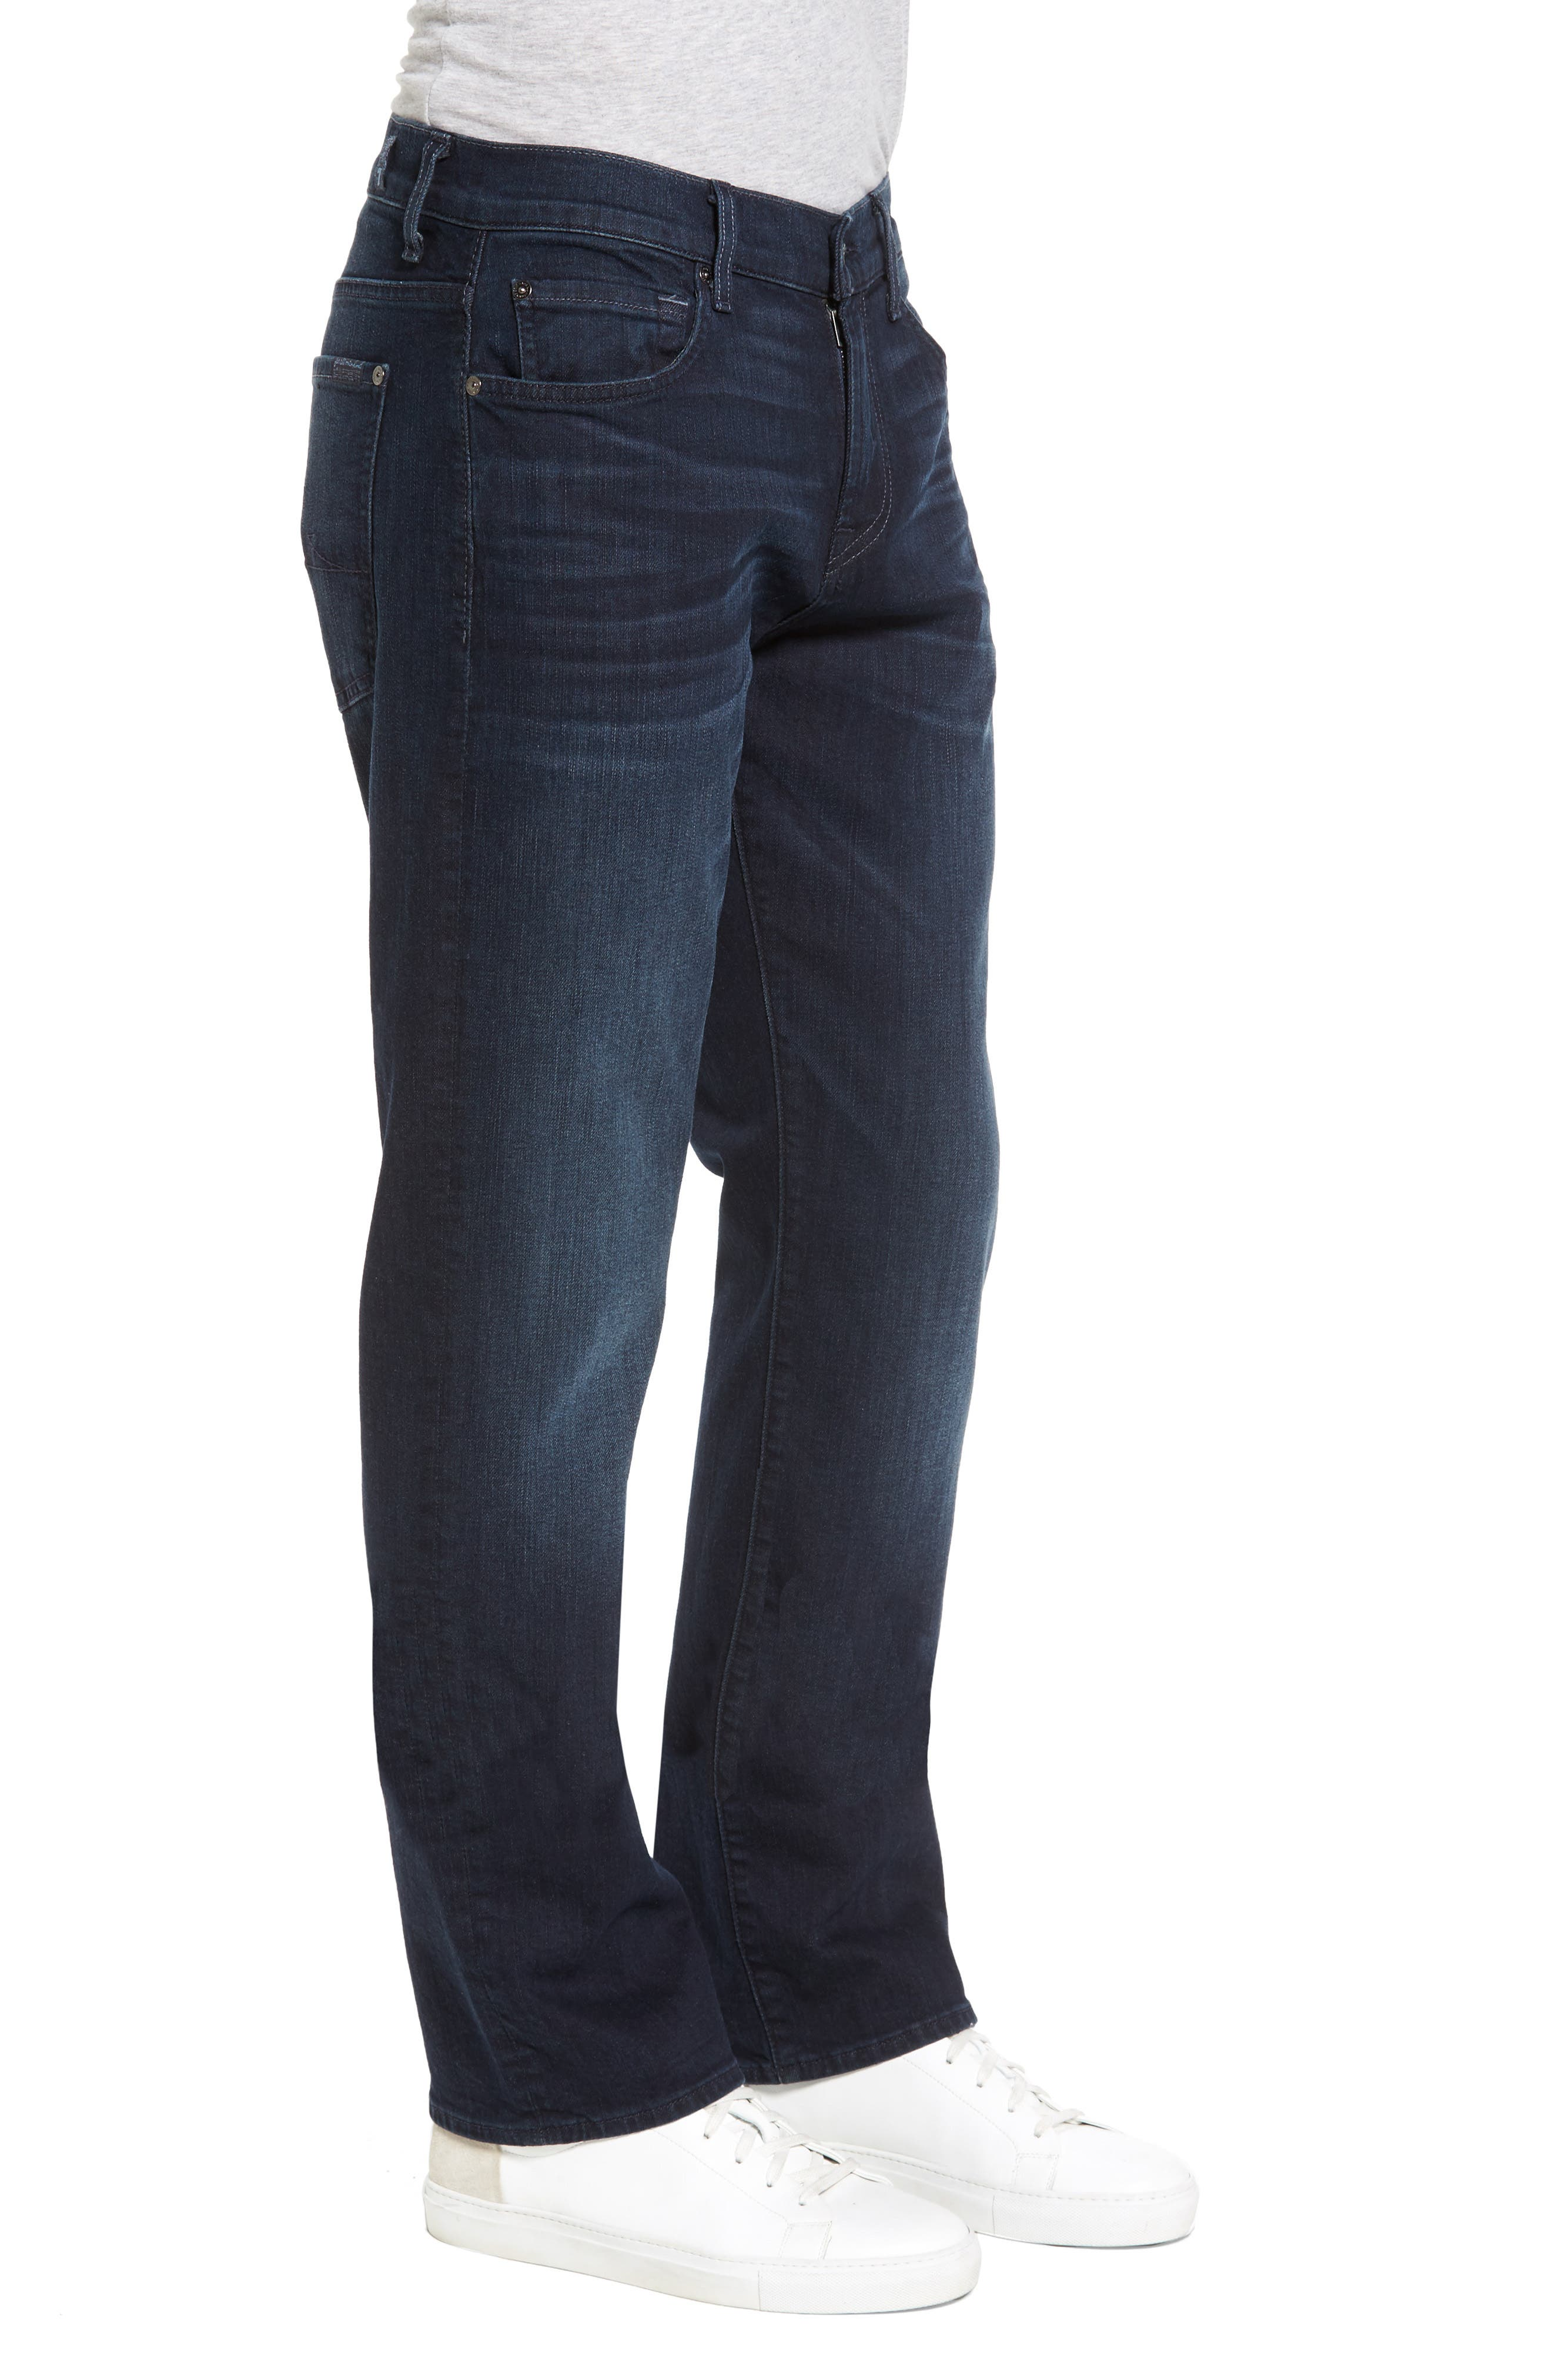 Luxe Performance - Carsen Straight Leg Jeans,                             Alternate thumbnail 3, color,                             DARK CURRENT